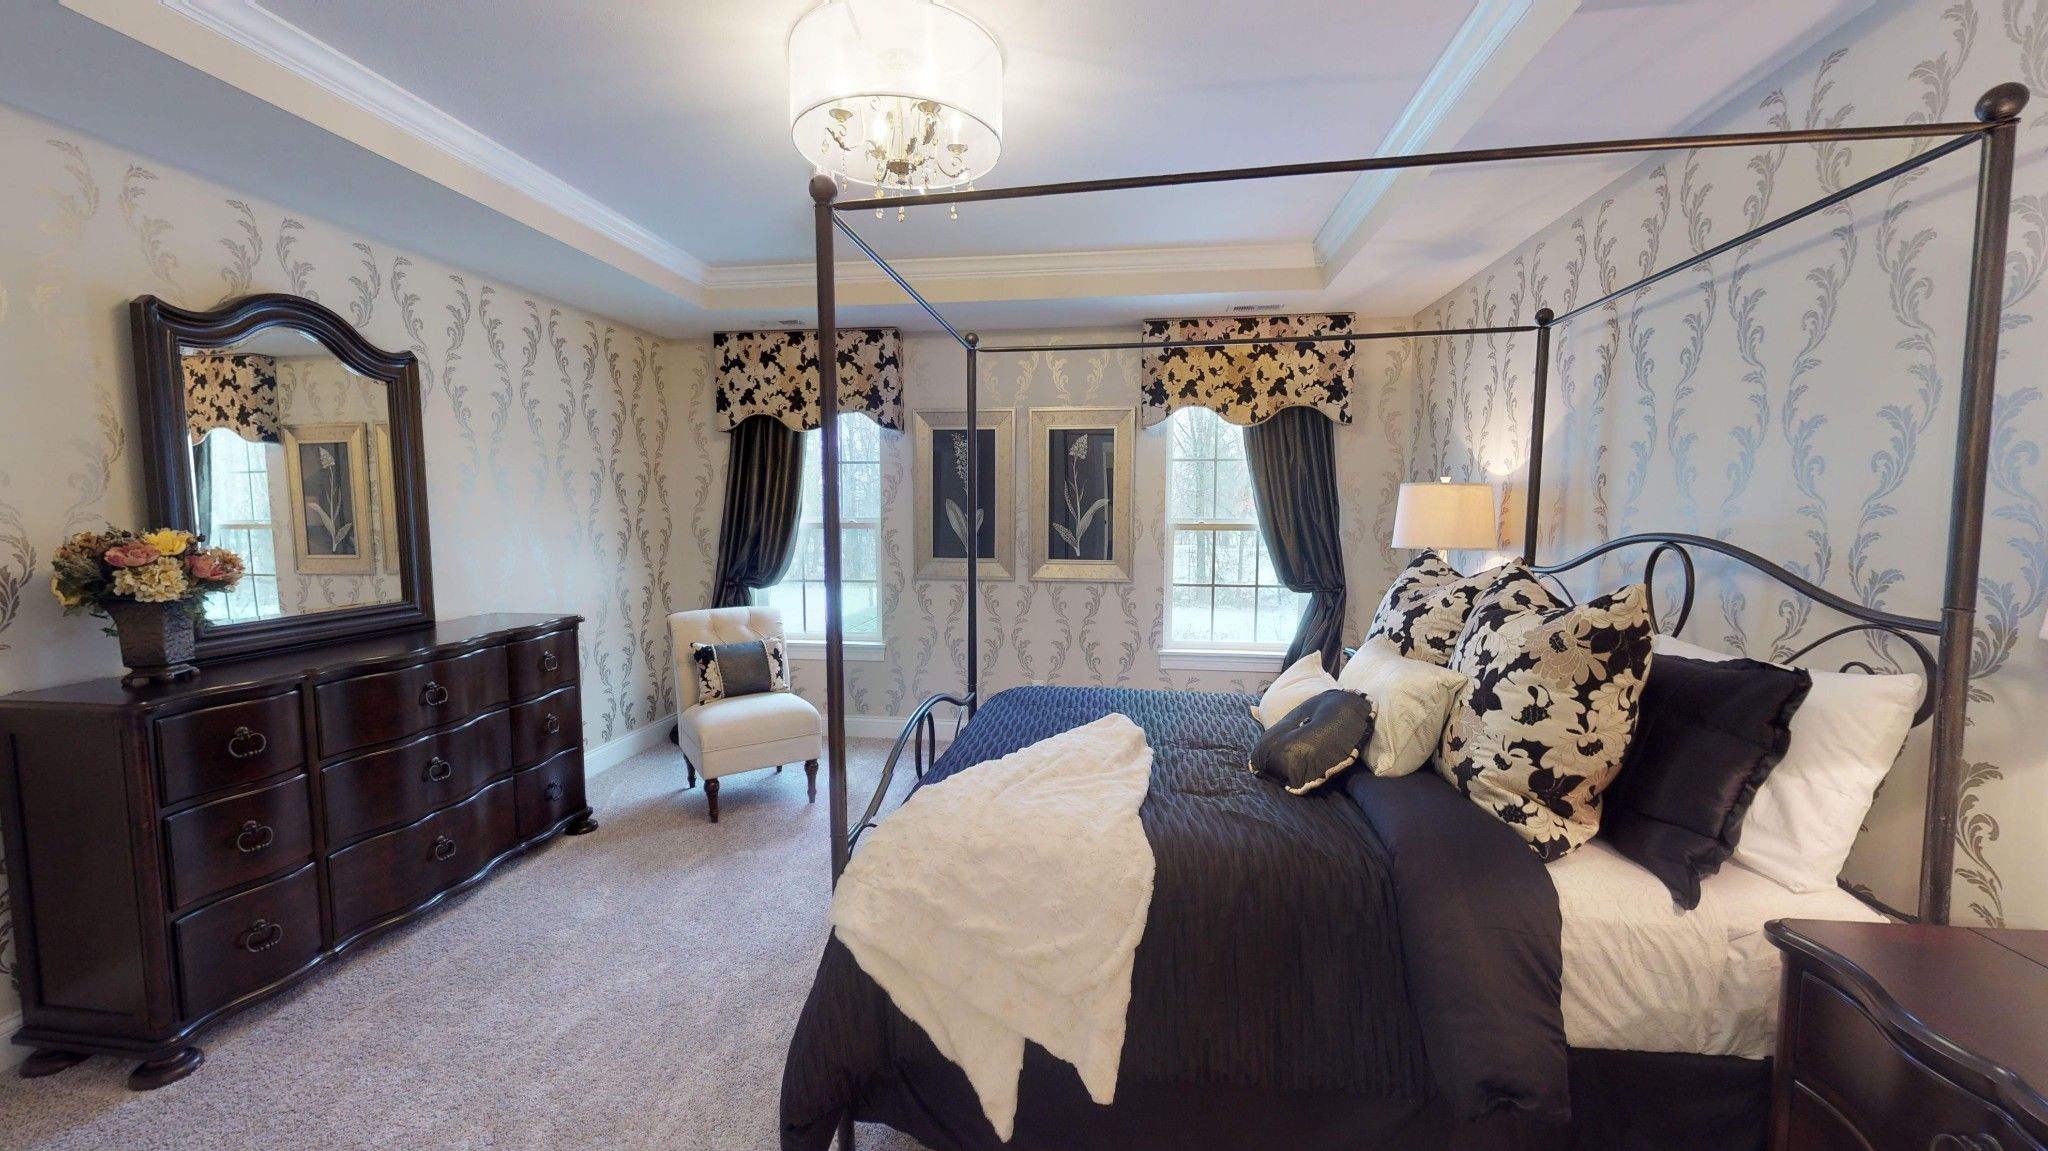 Bedroom featured in the Cordera By Olthof Homes in Gary, IN